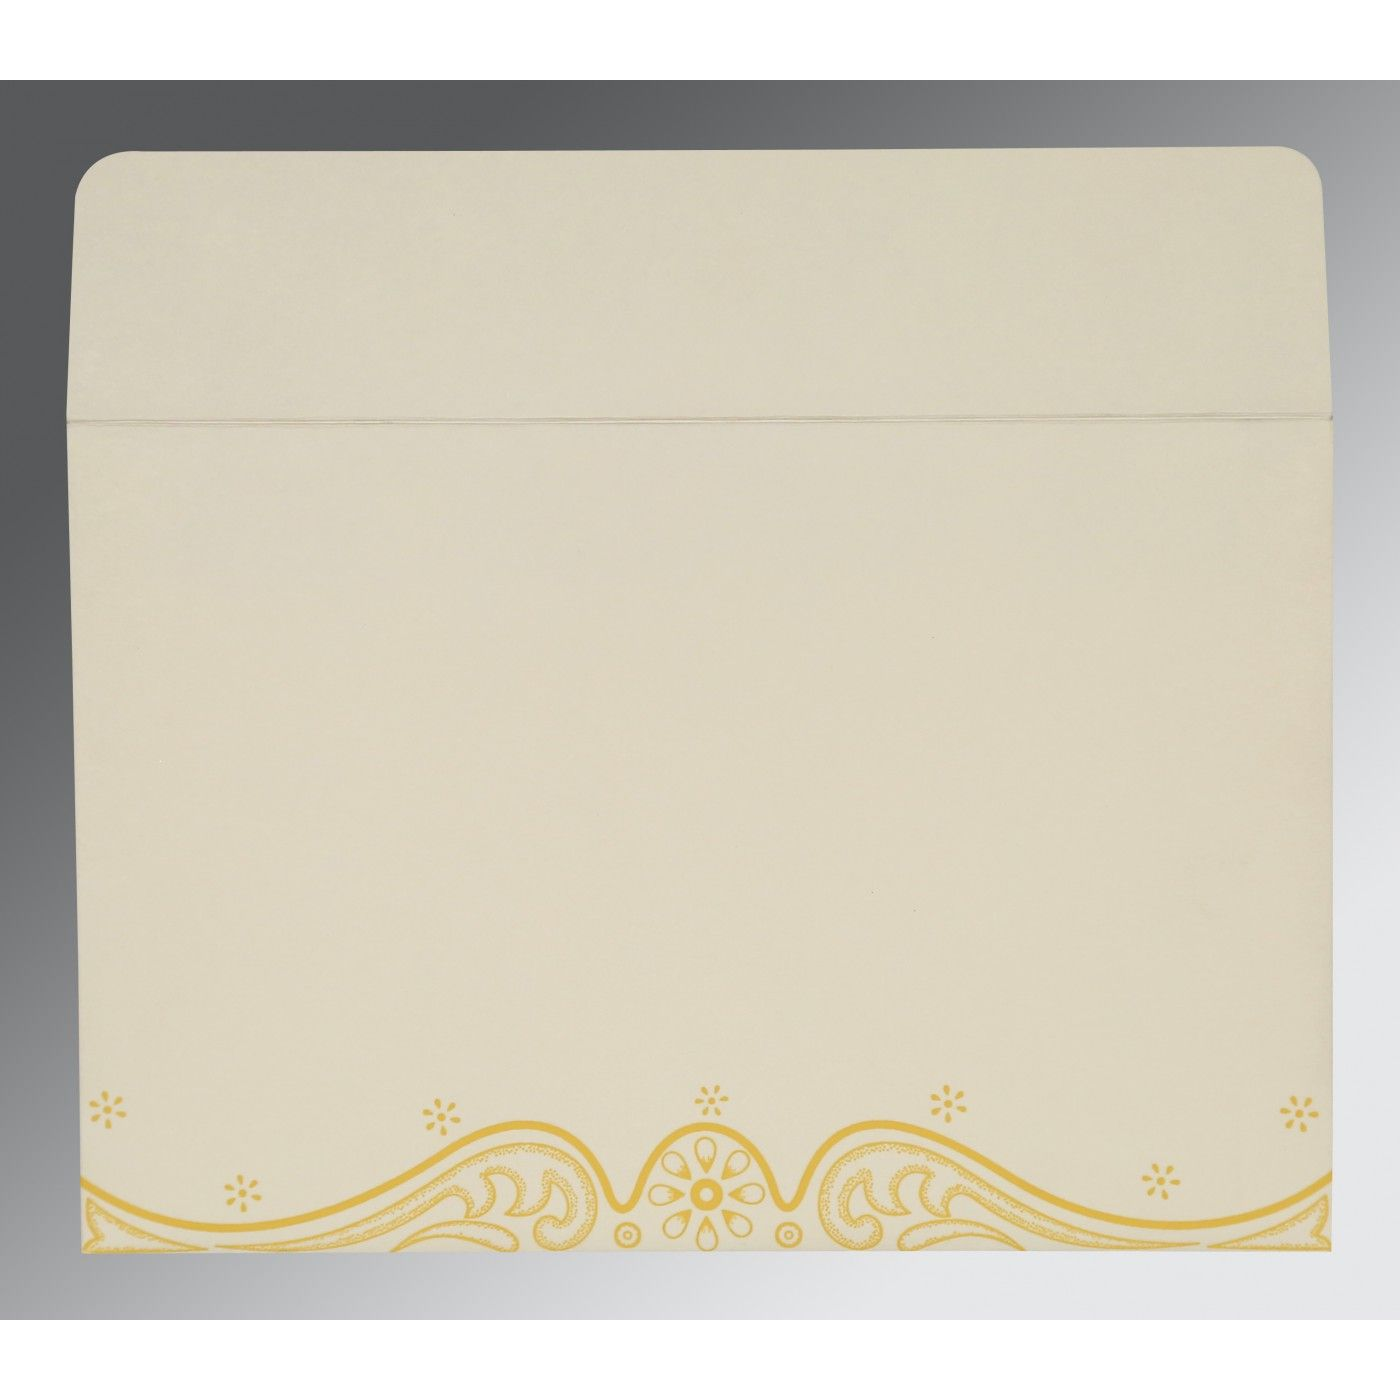 MUSTARD YELLOW MATTE EMBOSSED WEDDING INVITATION : CW-8221H - IndianWeddingCards